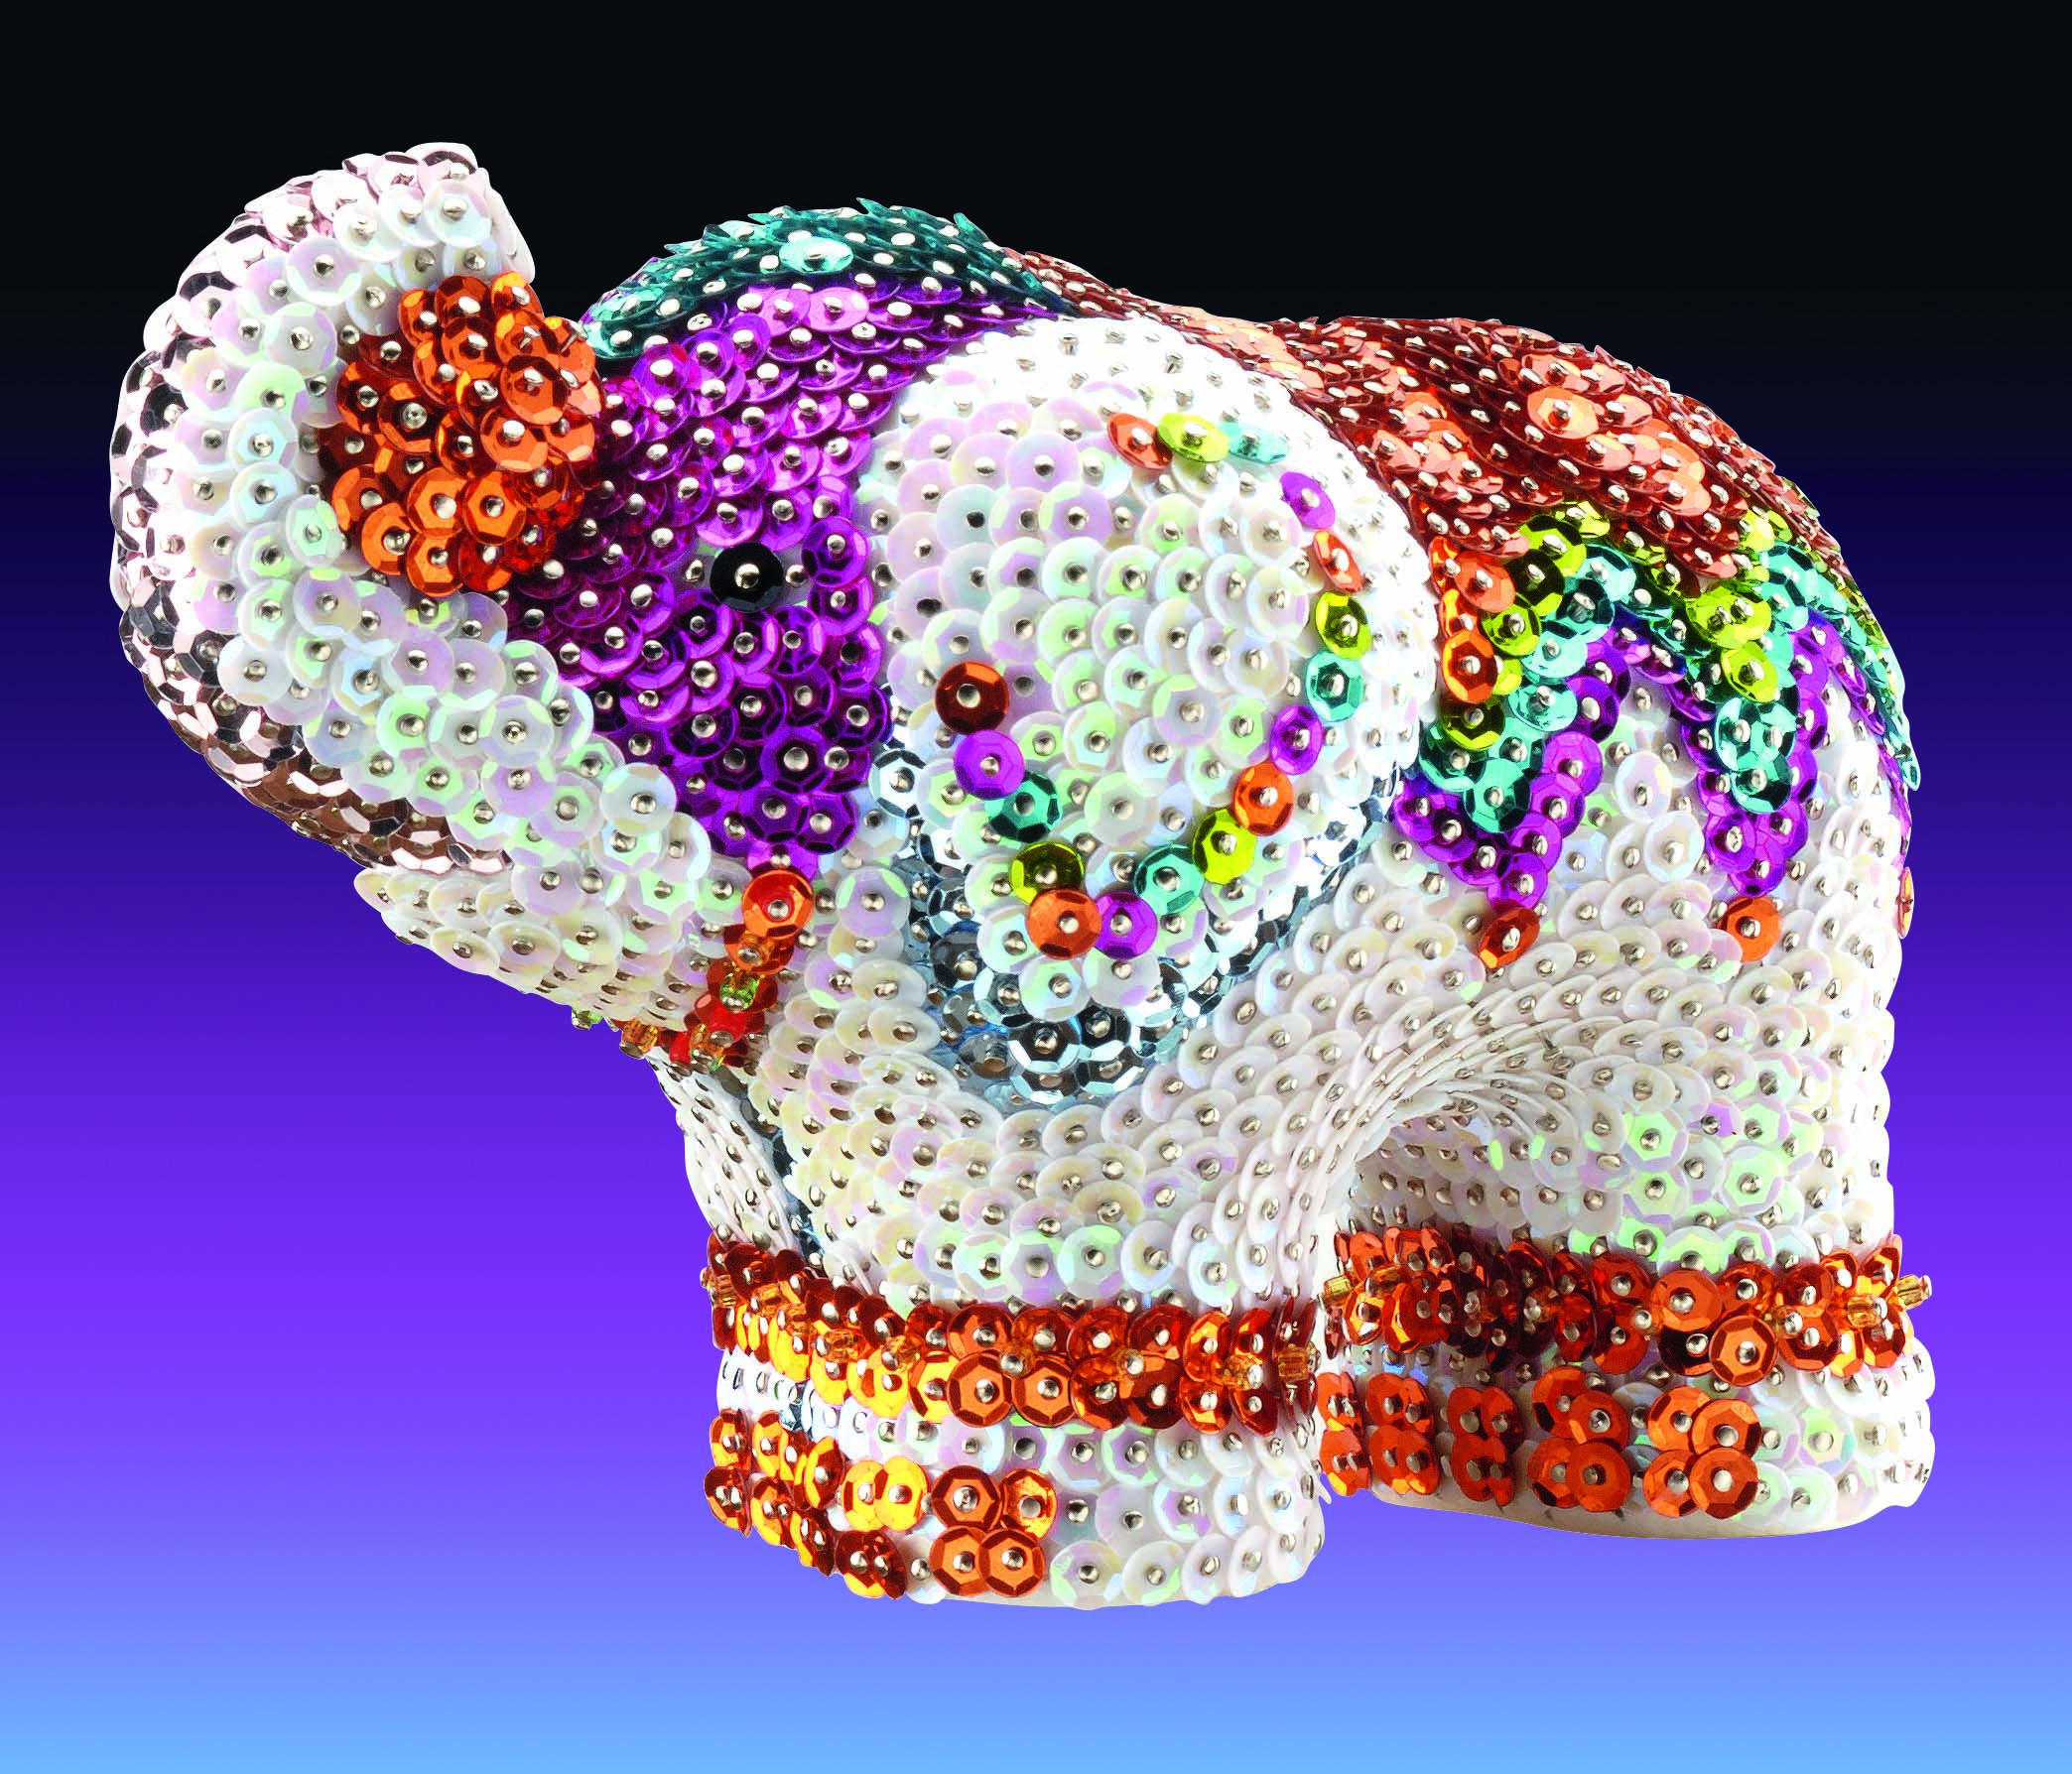 craft kits styrofoam animal and sequins an array of